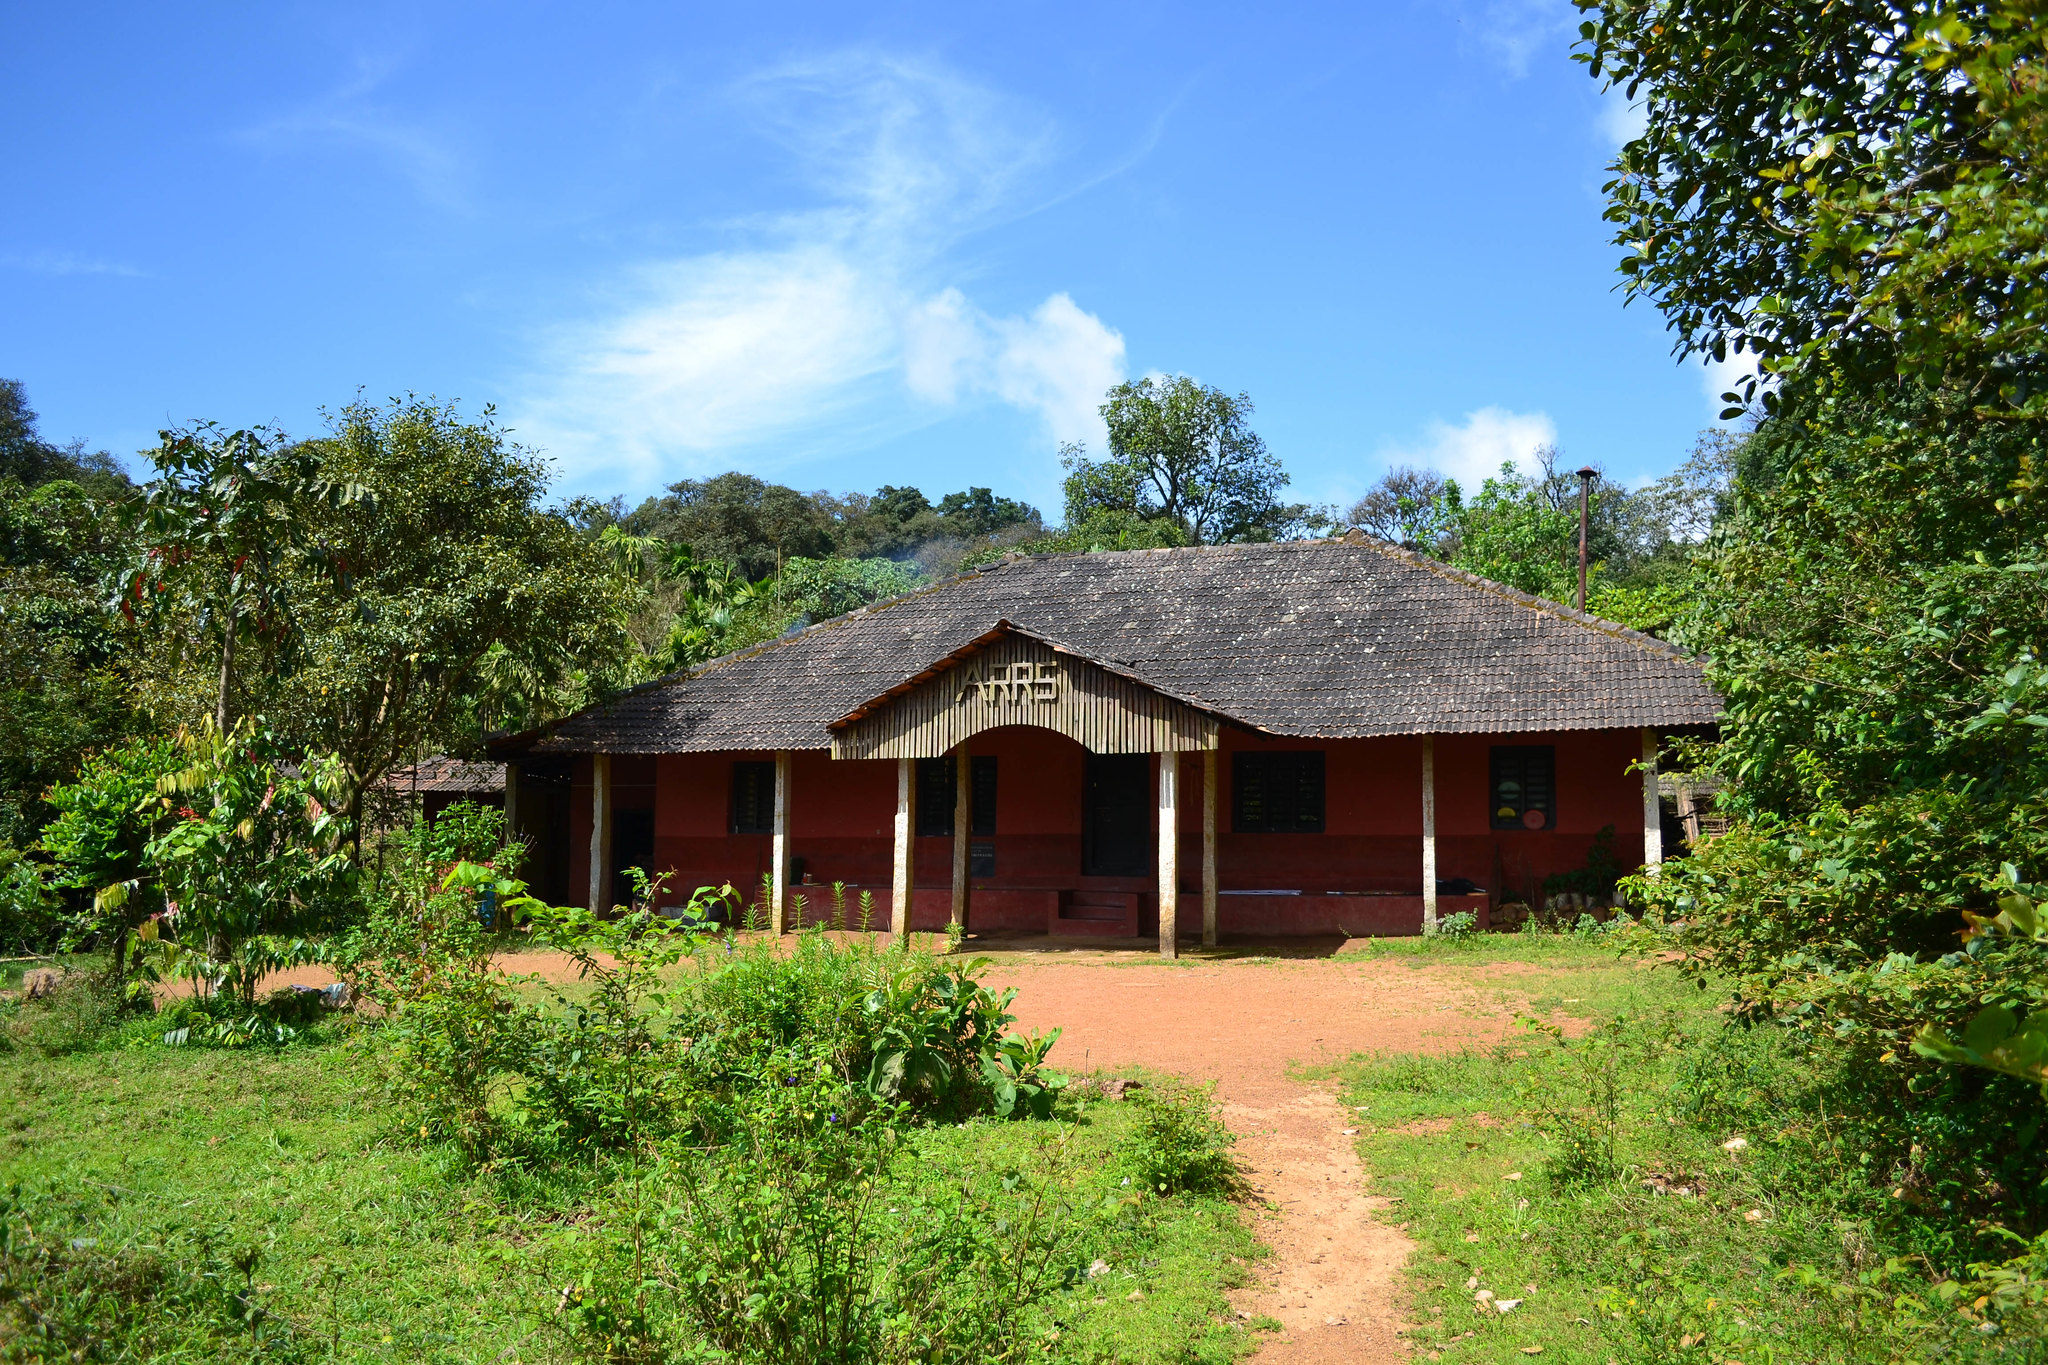 Top-Rated Place To Explore in Agumbe-Agumbe Rainforest Research Station